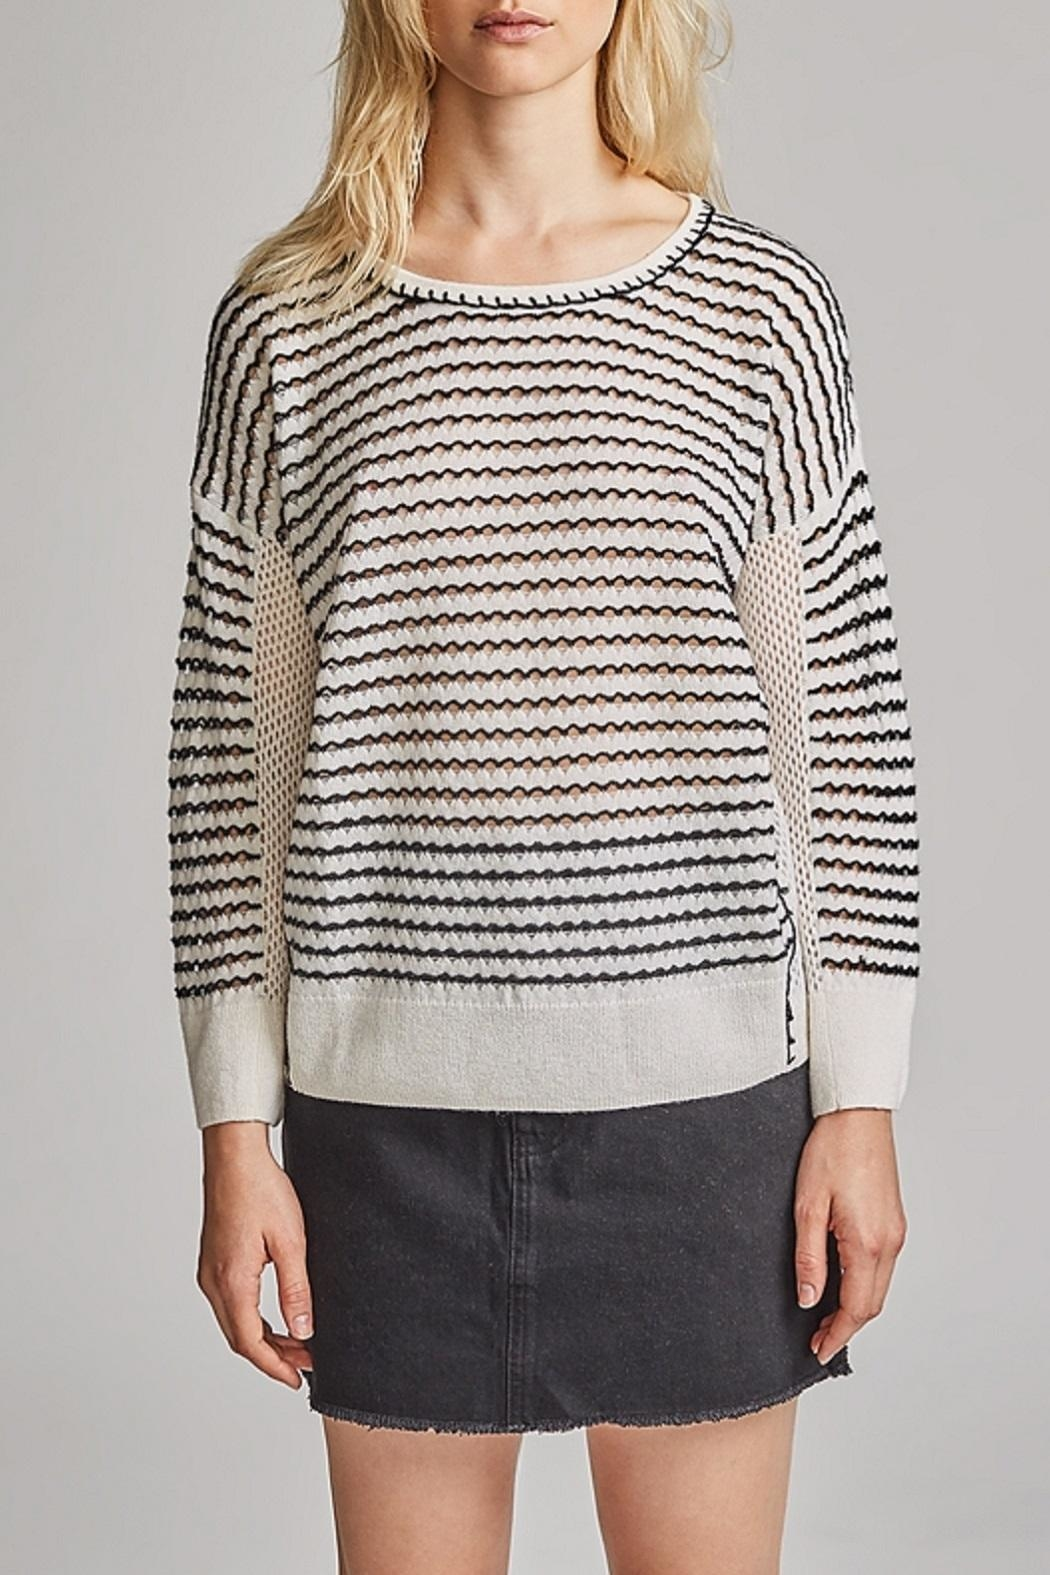 White + Warren Cashmere Crew Neck Sweater - Front Cropped Image